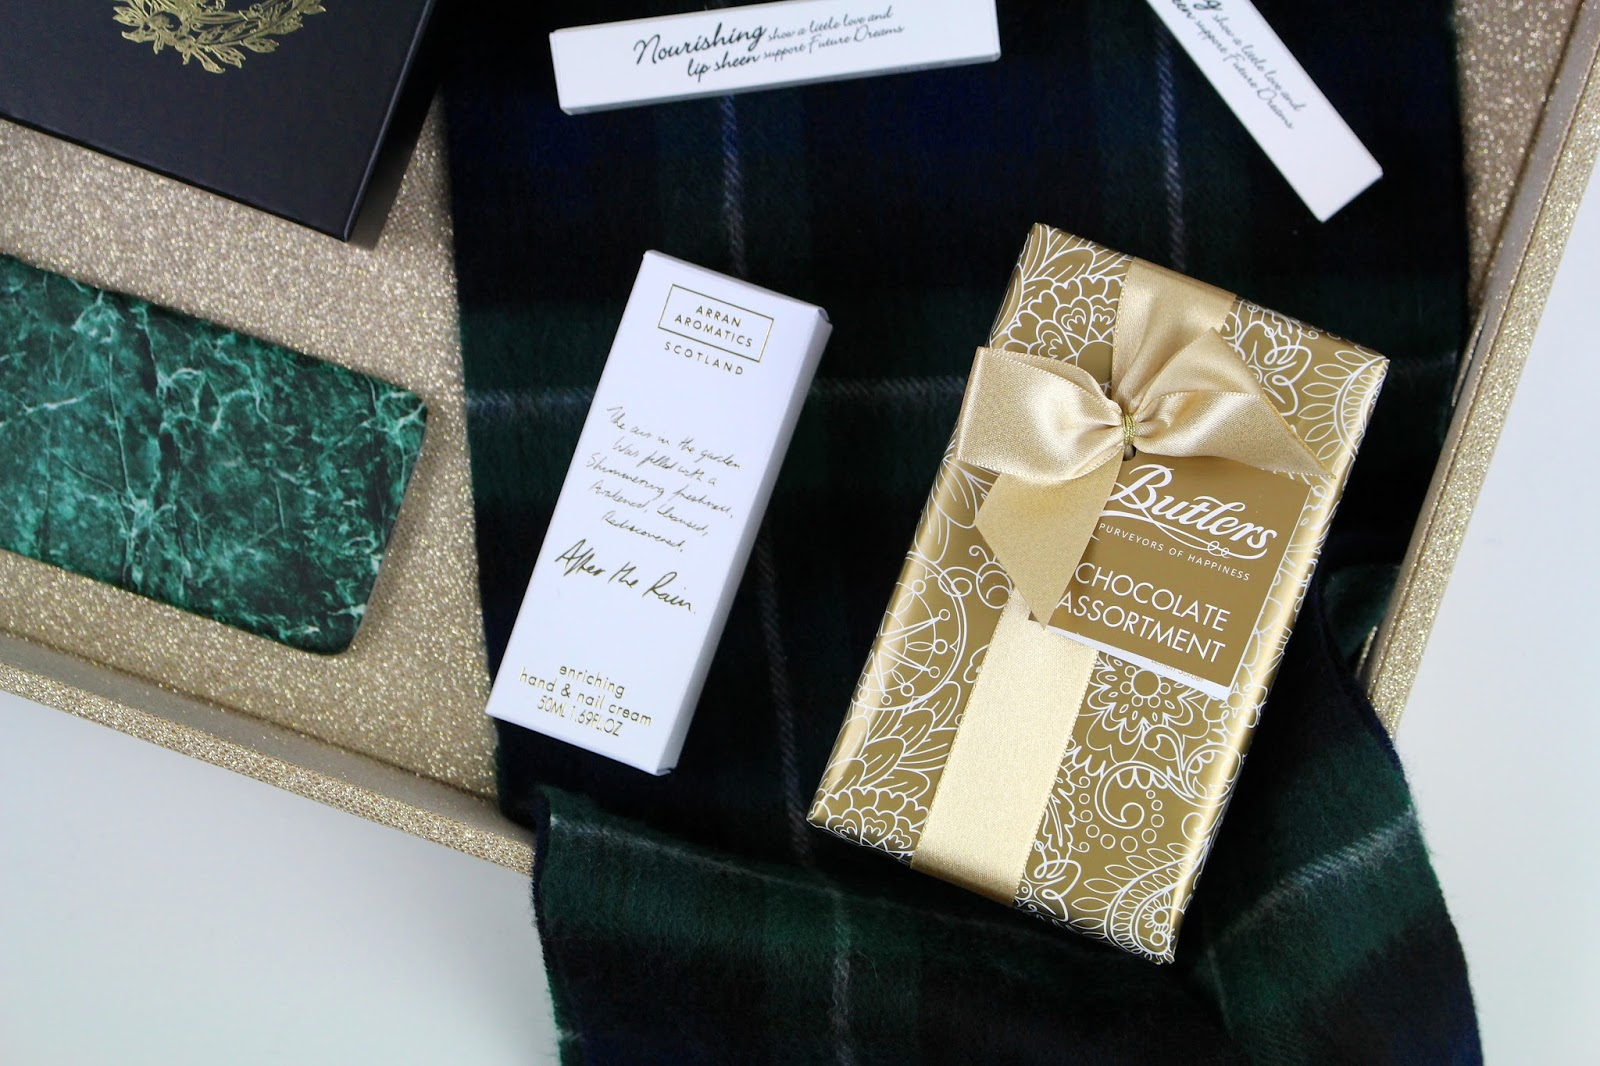 Christmas Luxury Small Gift Guide